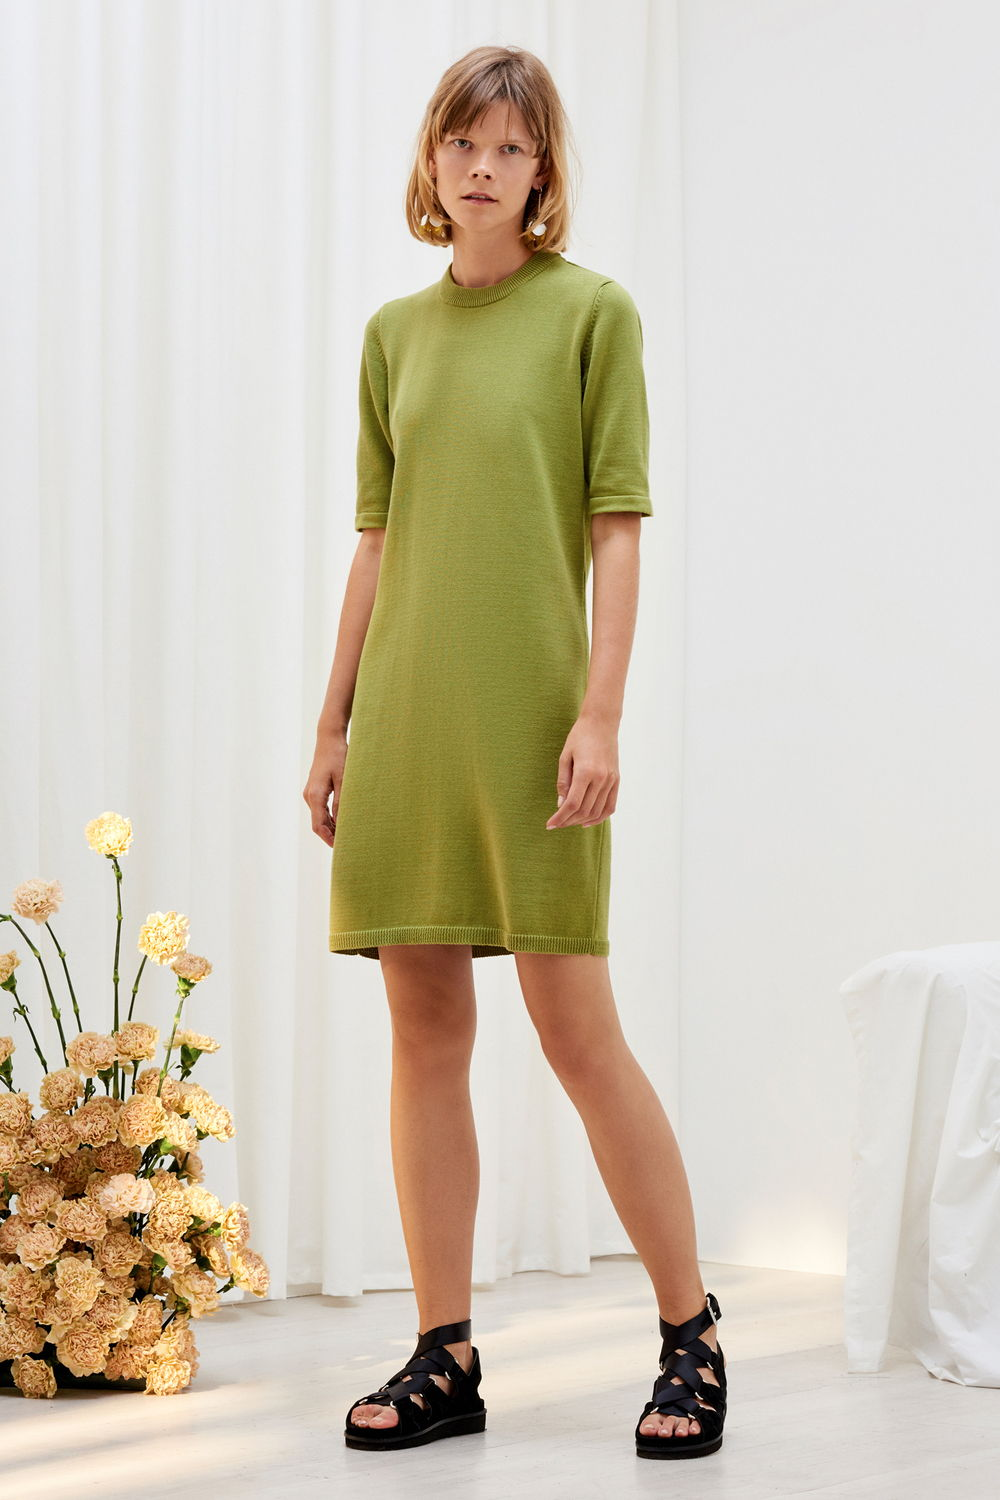 Gingko Organic Cotton Knitted Tee Dress - Kowtow | Ecoture